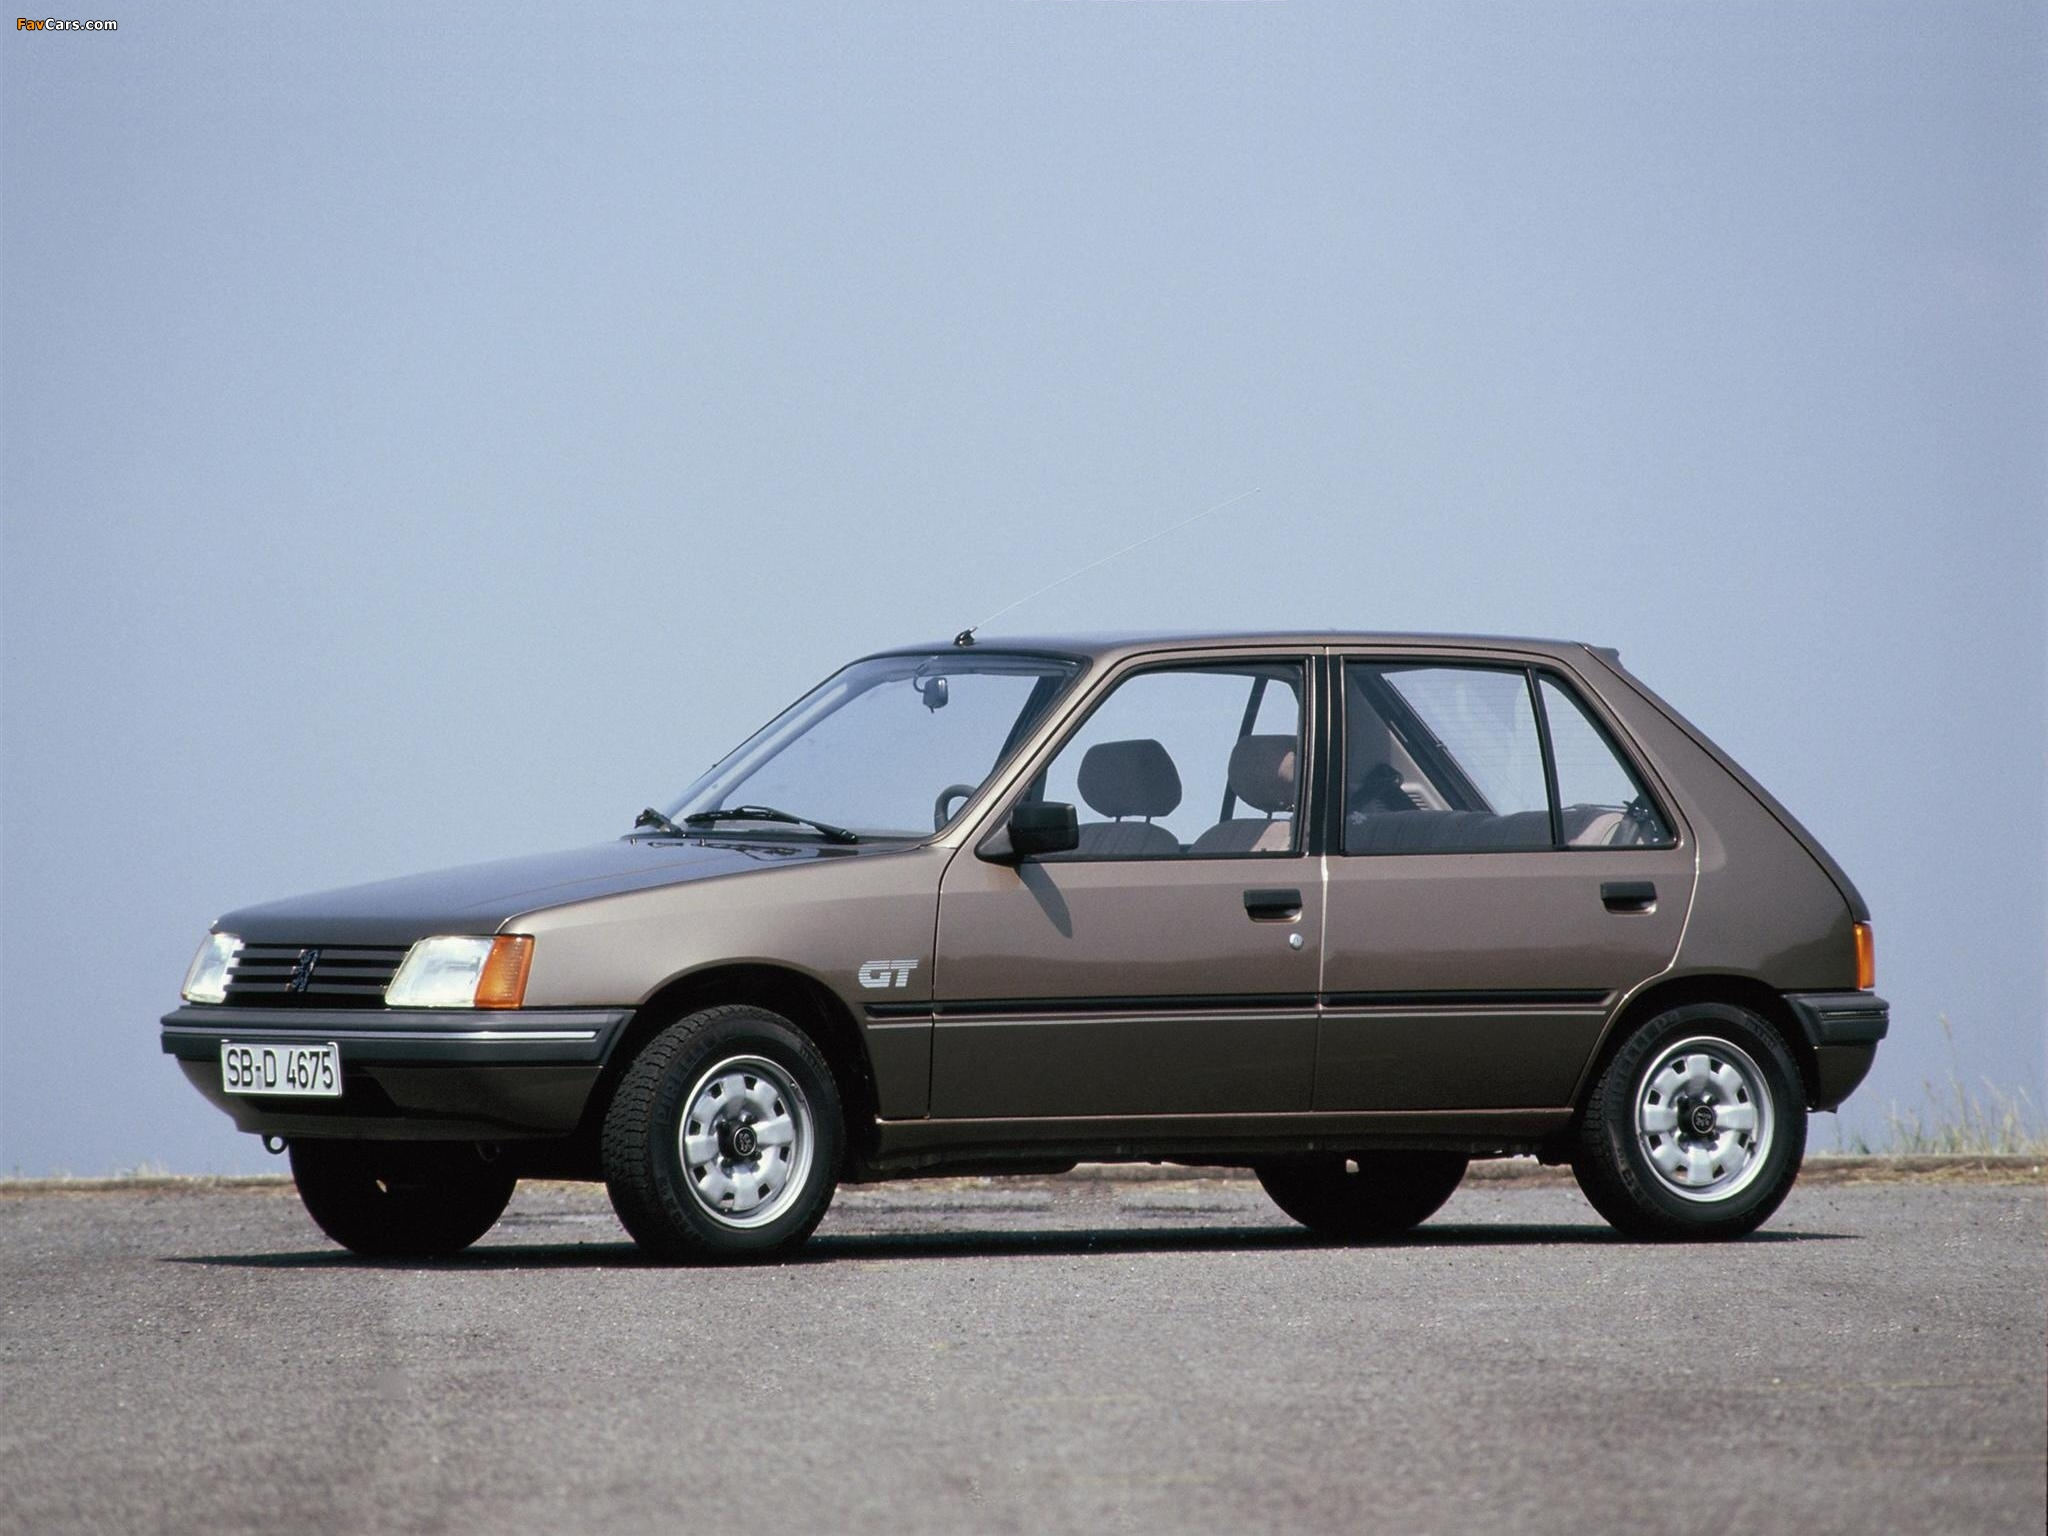 Peugeot 205 I (741A/C) 1.1 (49 Hp) Technical specifications and